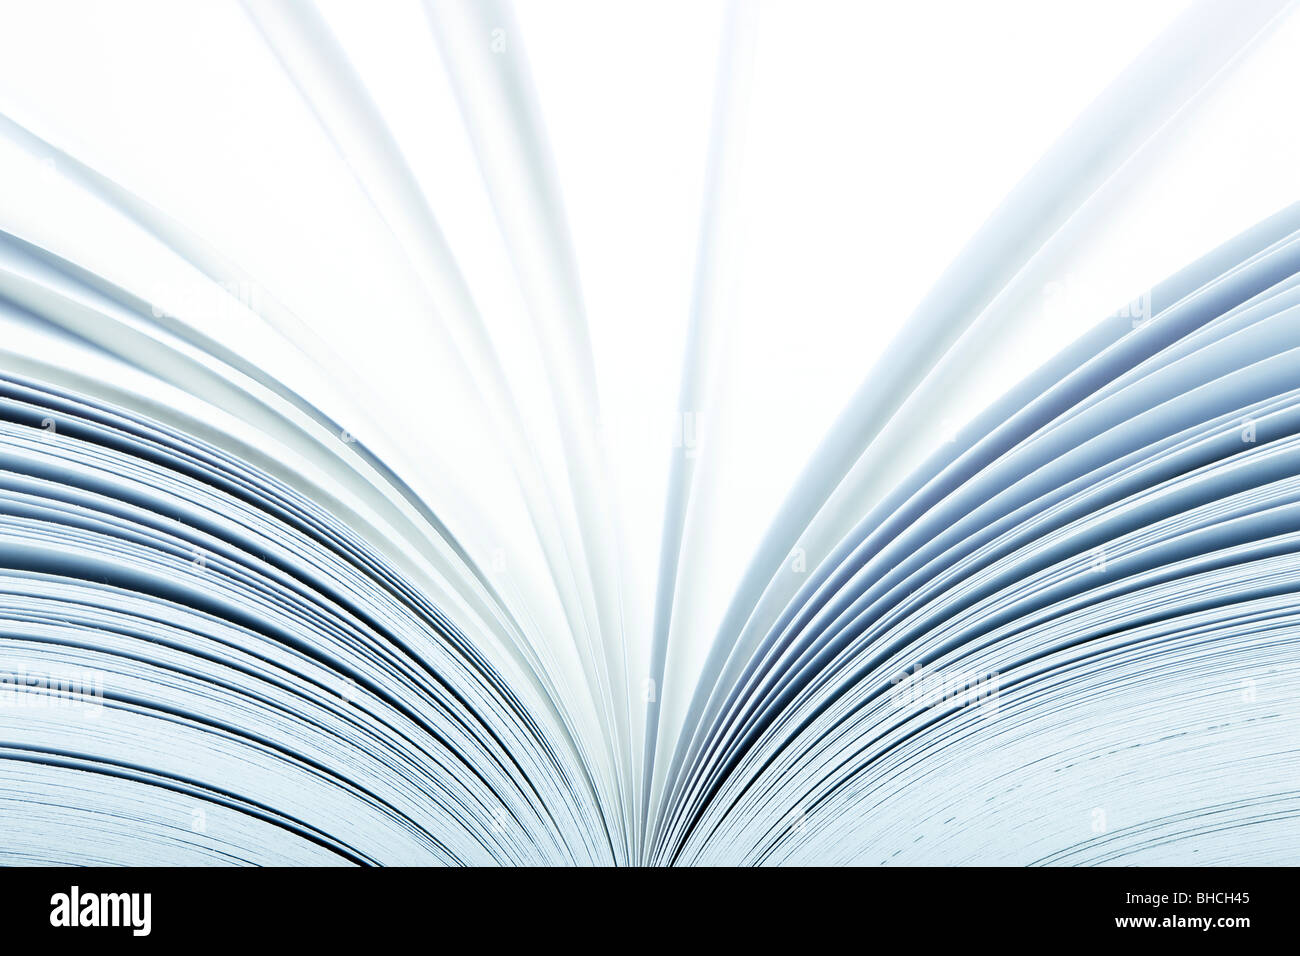 Macro of a open book with pages turning- selective focus - Stock Image